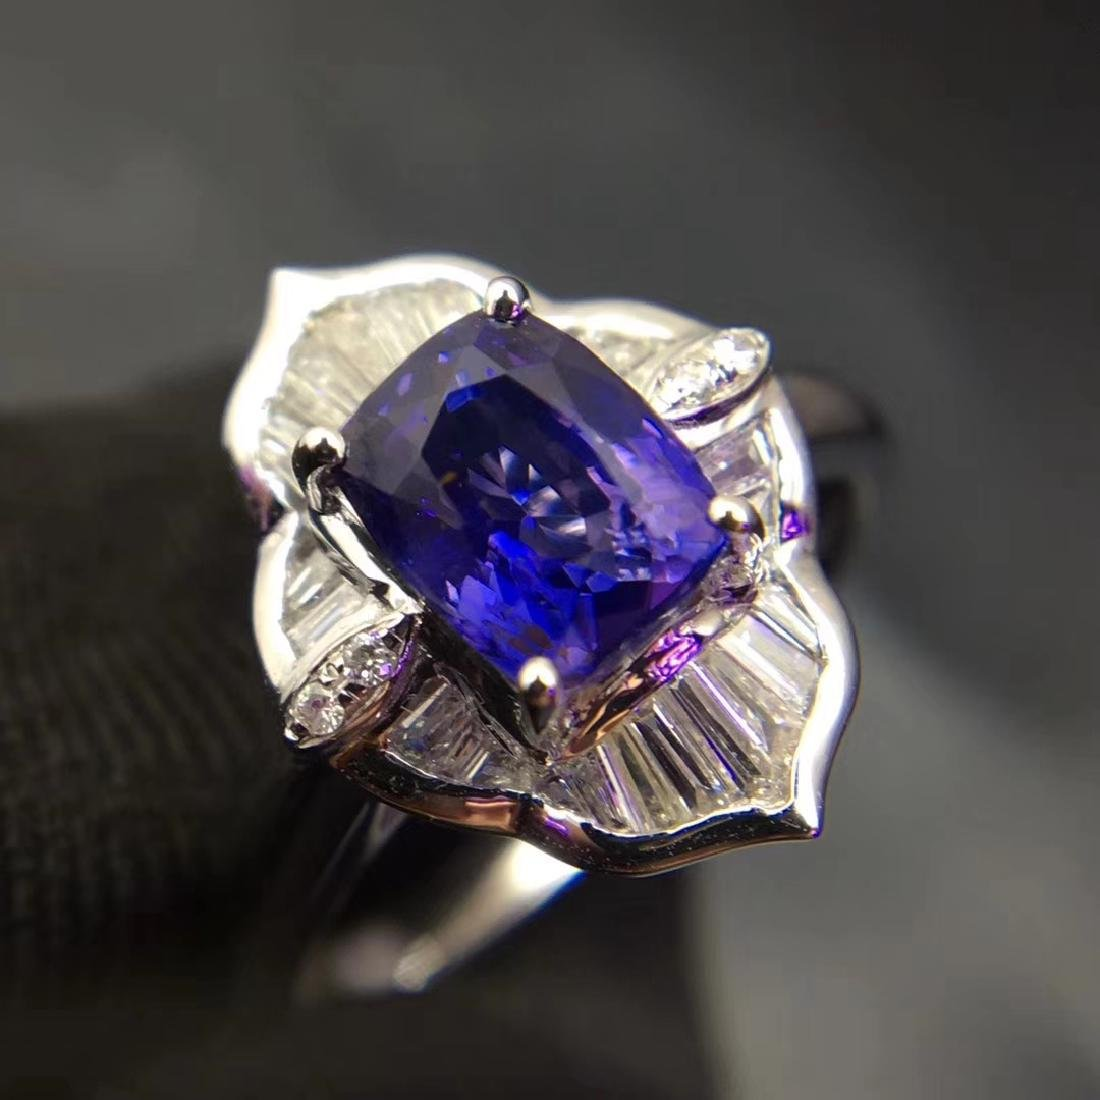 1.52ct Sapphire Ring in 18kt white Gold - 5